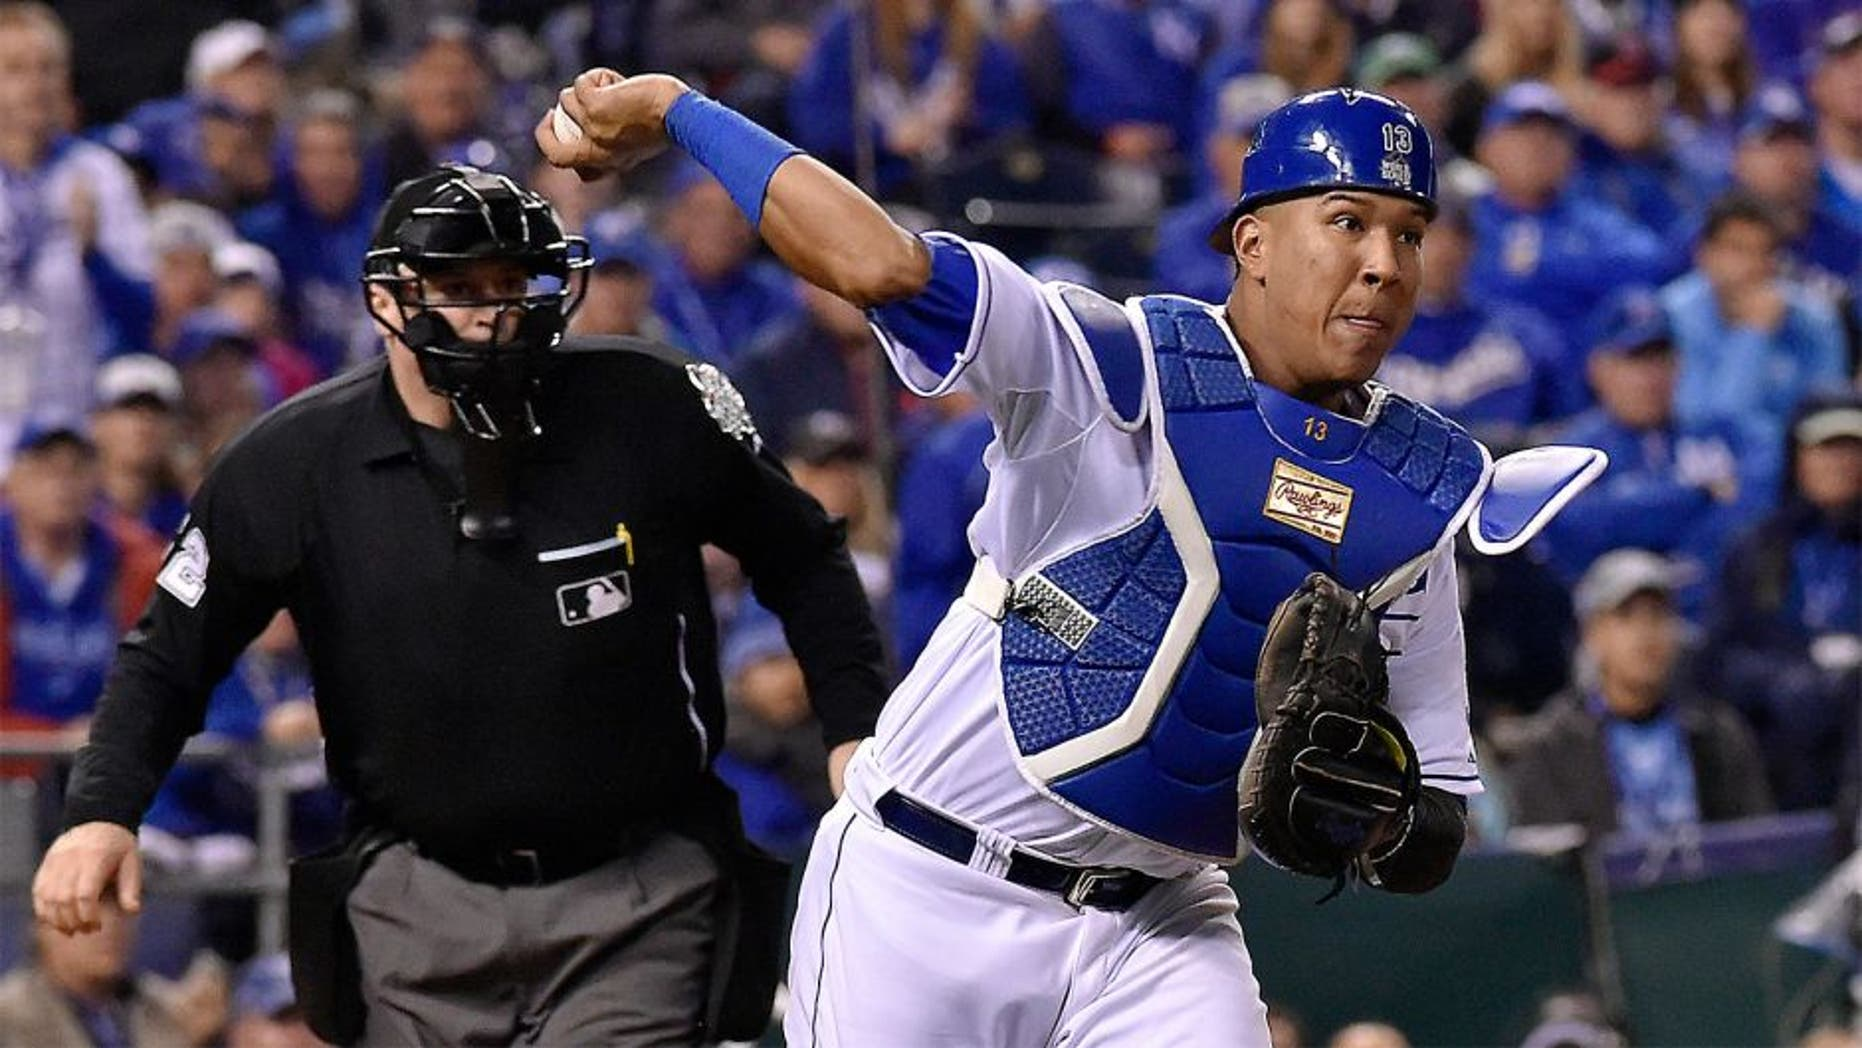 Kansas City Royals catcher Salvador Perez throws to first to retire the New York Mets' Daniel Murphy on a third-strike wild pitch in the 12th inning in Game 1 of the World Series on Tuesday, Oct. 27, 2015, at Kauffman Stadium in Kansas City, Mo. (John Sleezer/Kansas City Star/TNS via Getty Images)